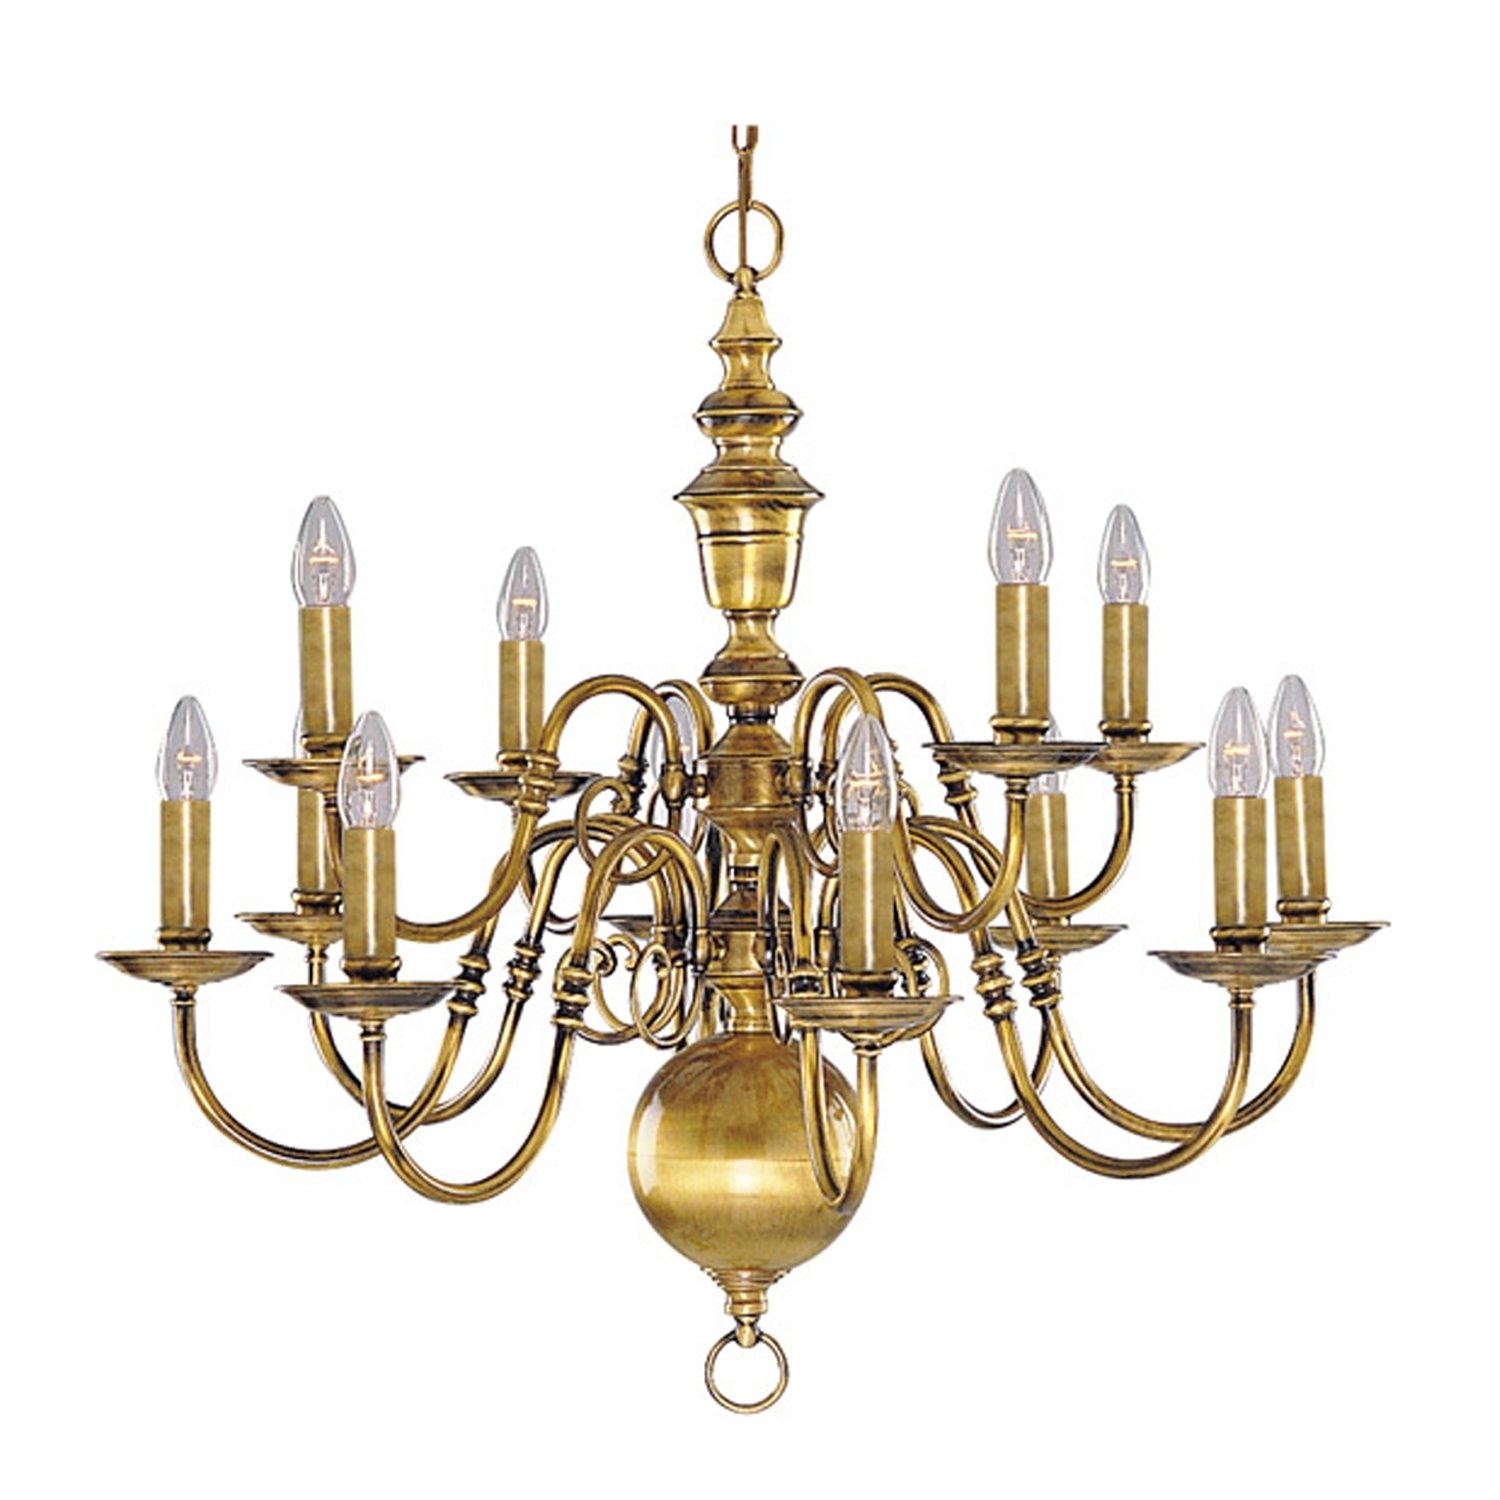 Vintage Brass Chandeliers throughout Preferred Chandeliers Design : Wonderful Interesting Antique Brass Chandelier